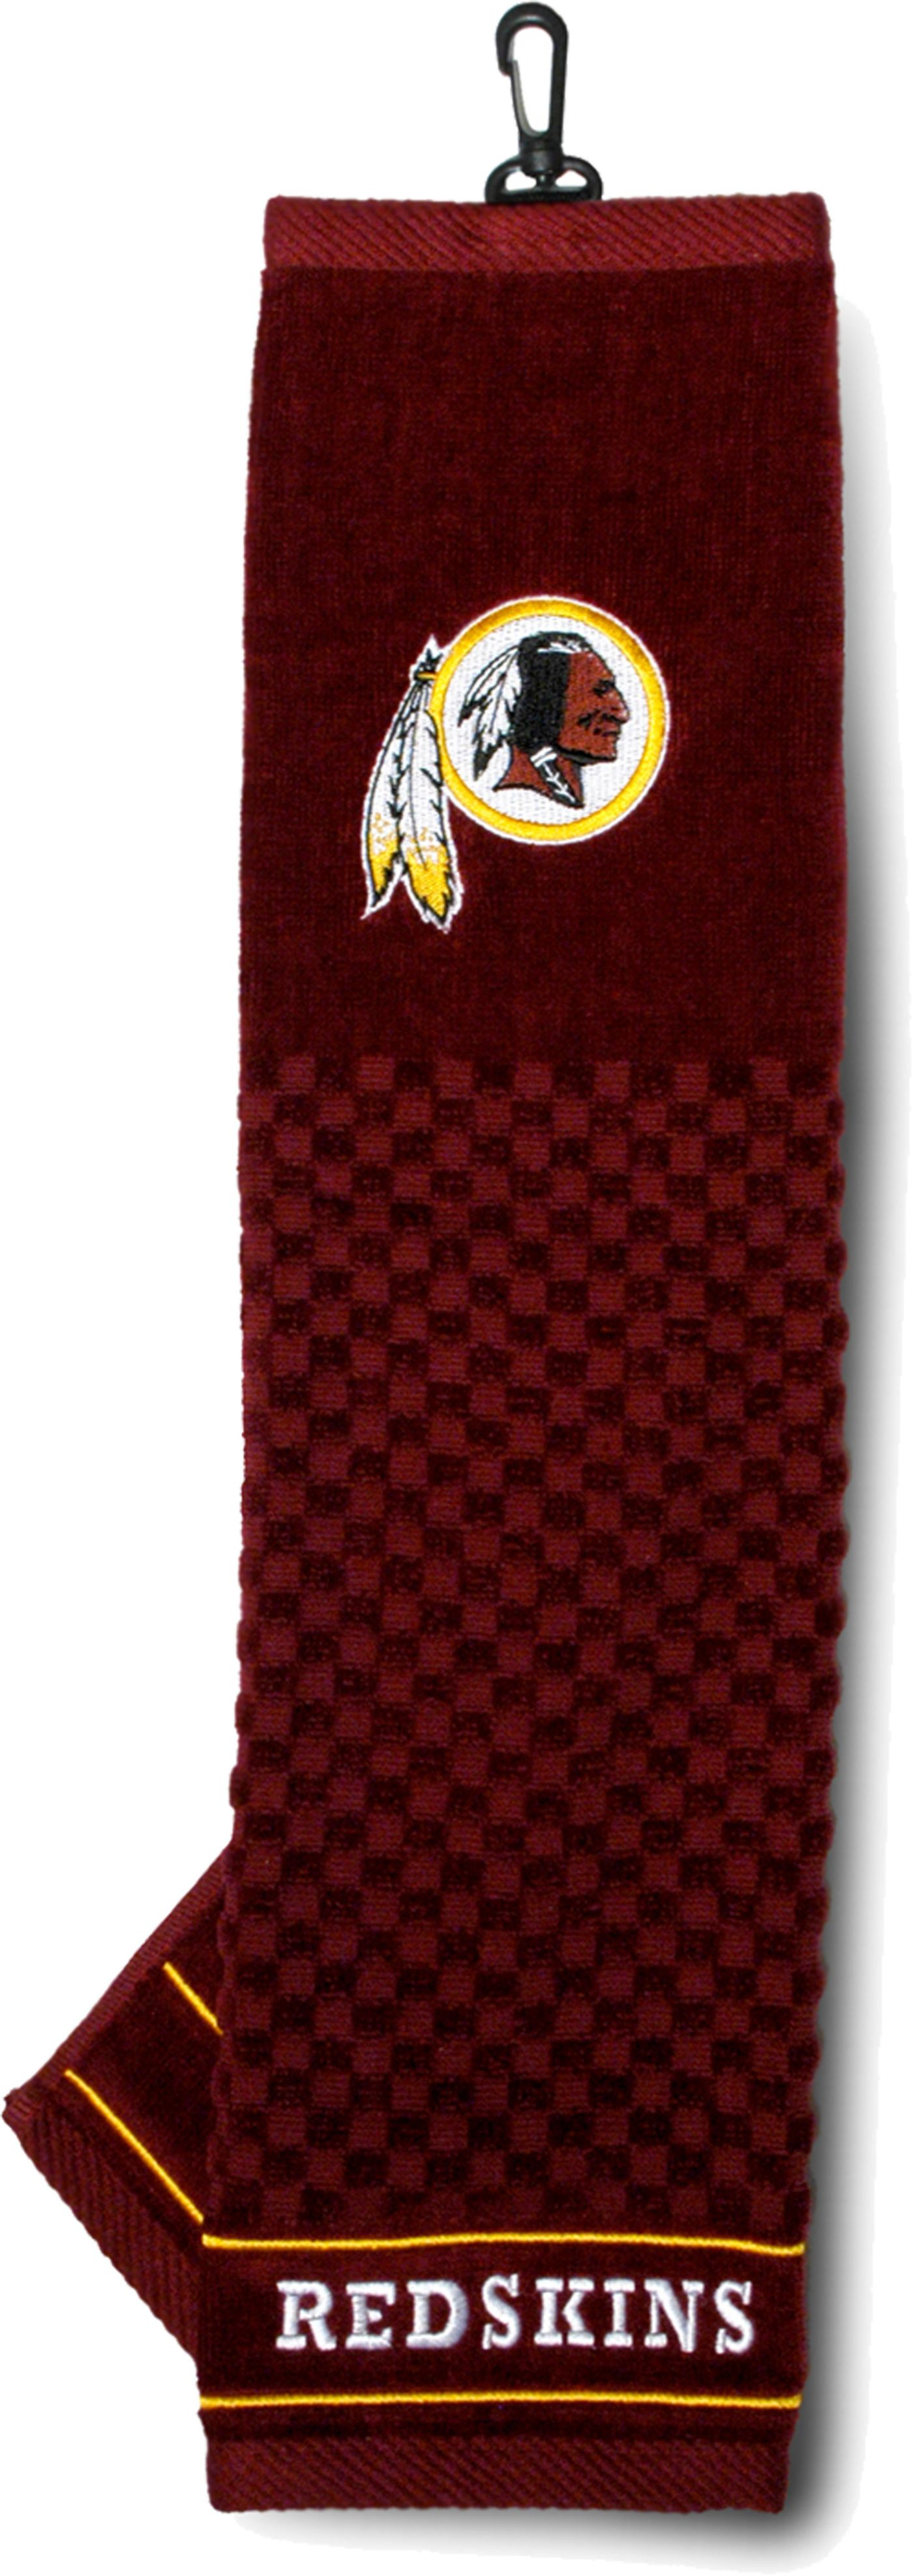 Team Golf Washington Redskins Embroidered Towel